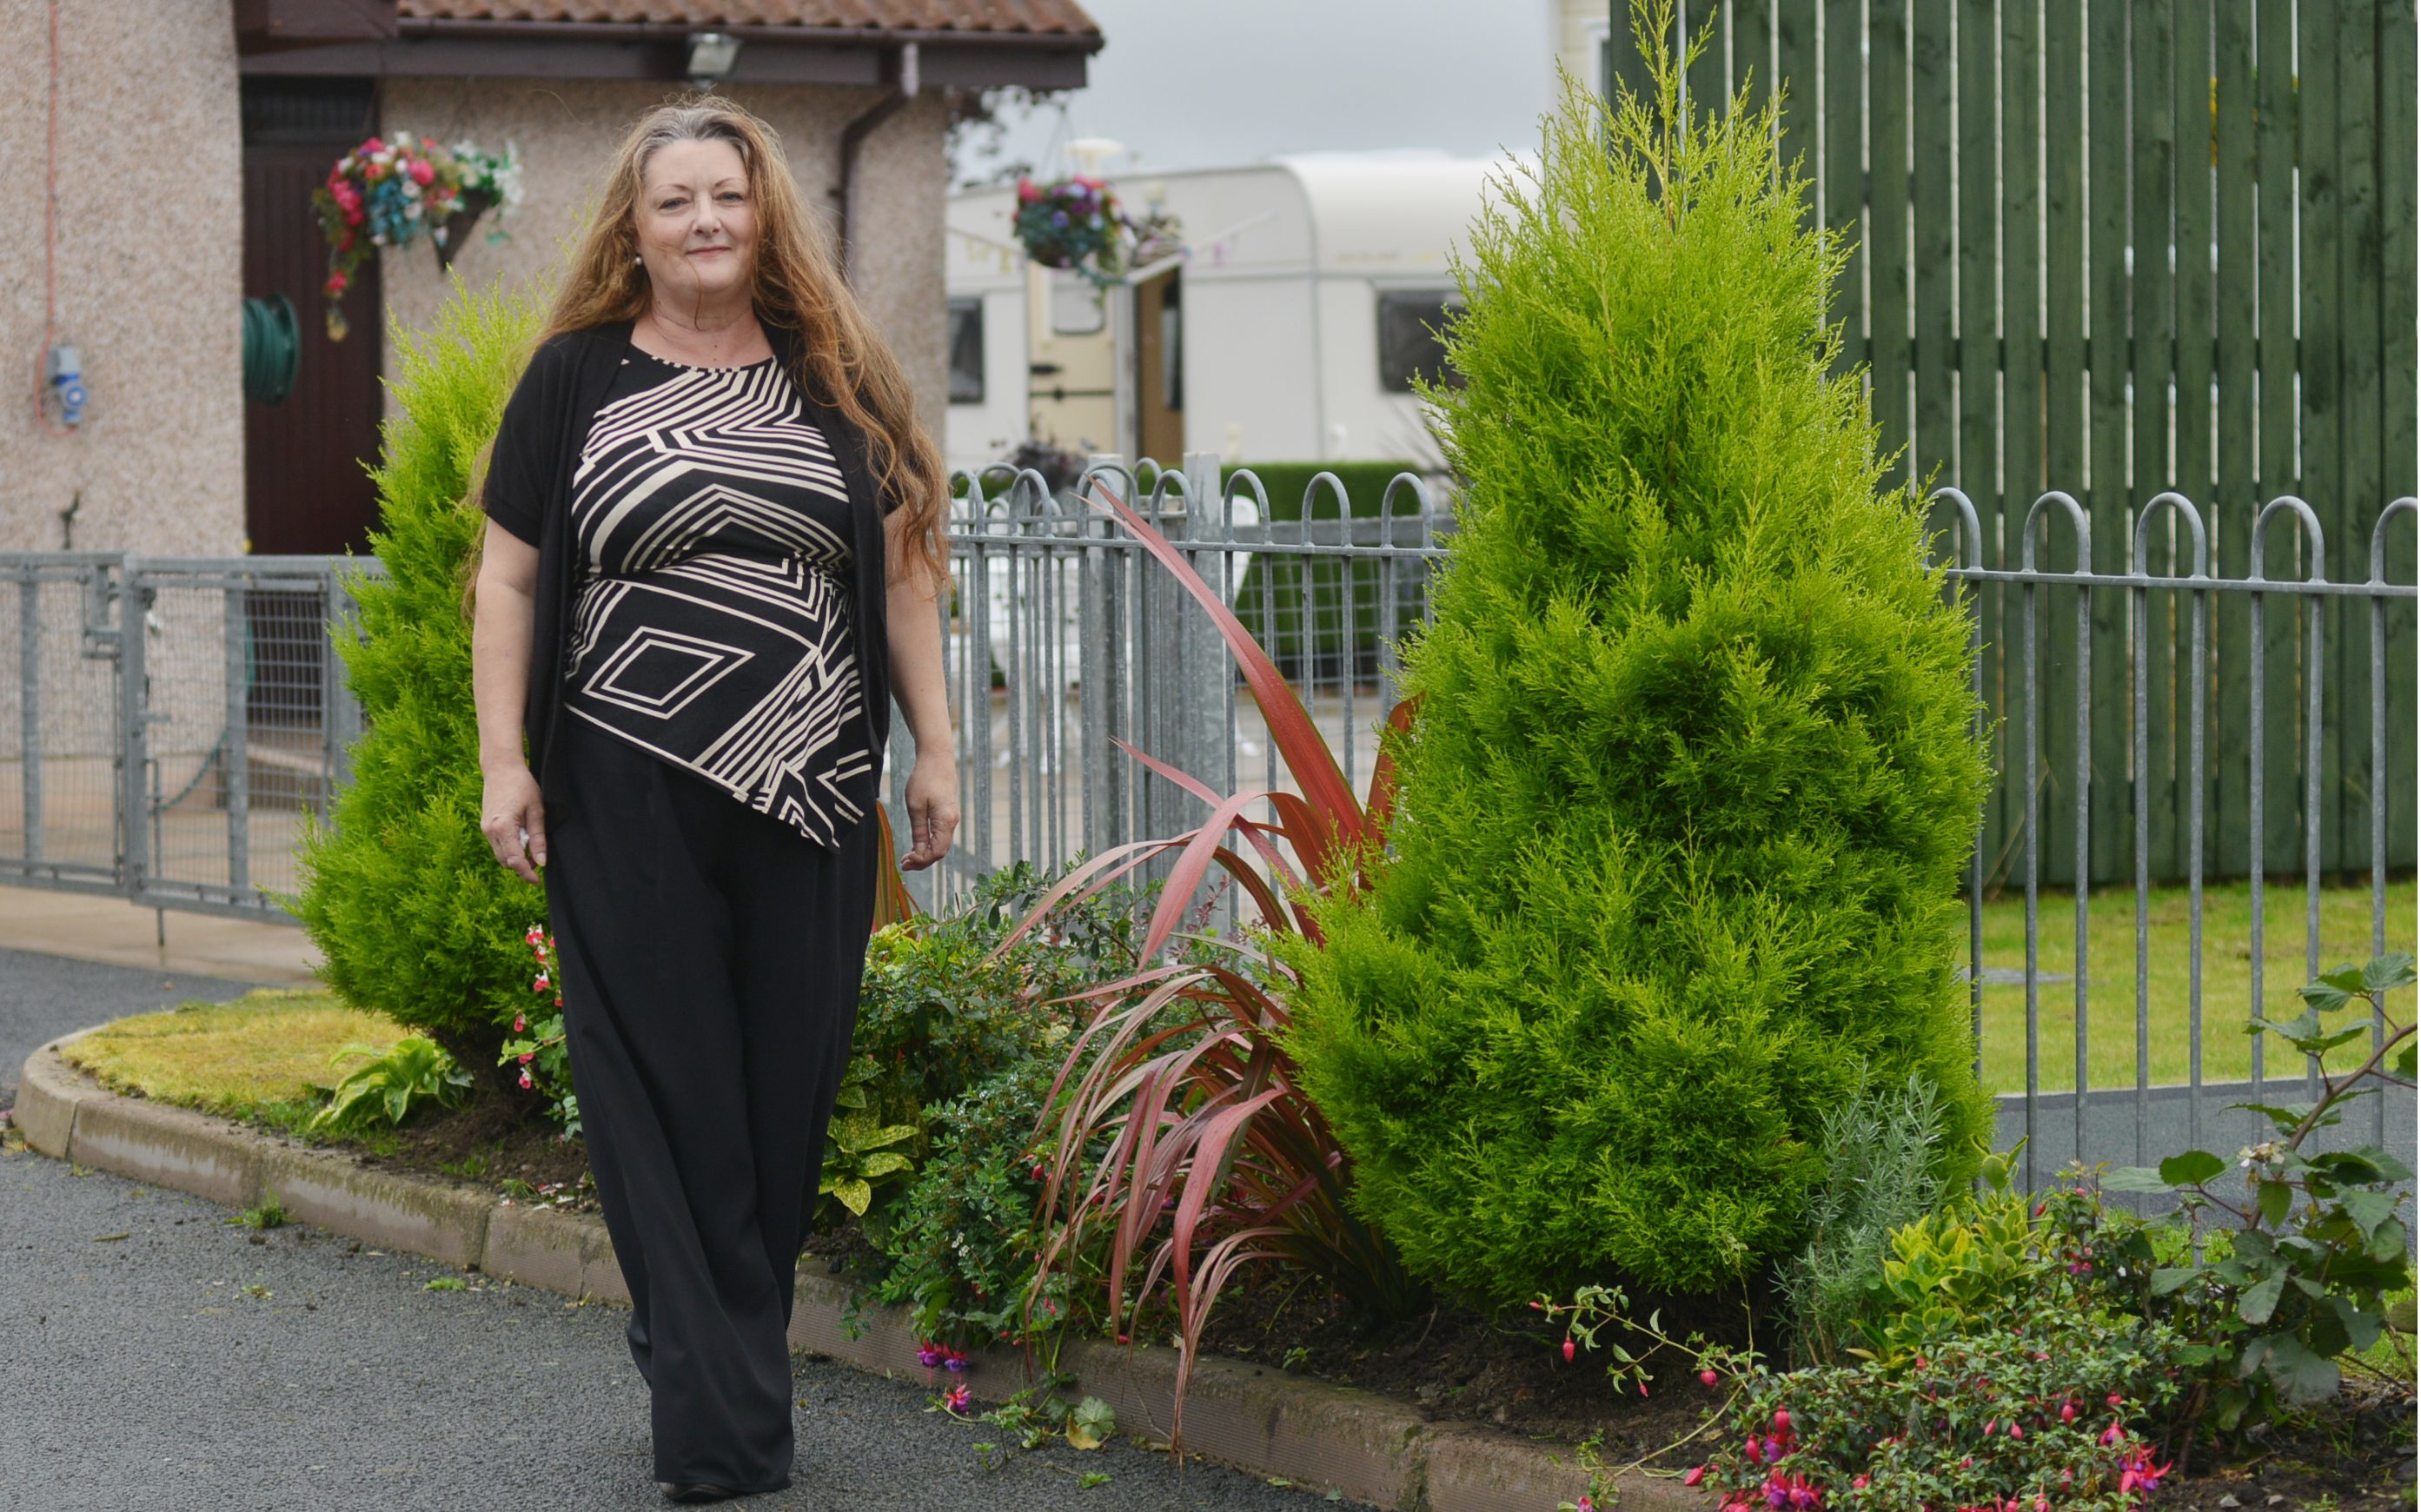 Lesley Corio, manager of Thornton Wood Travellers site has welcomed the initiative.